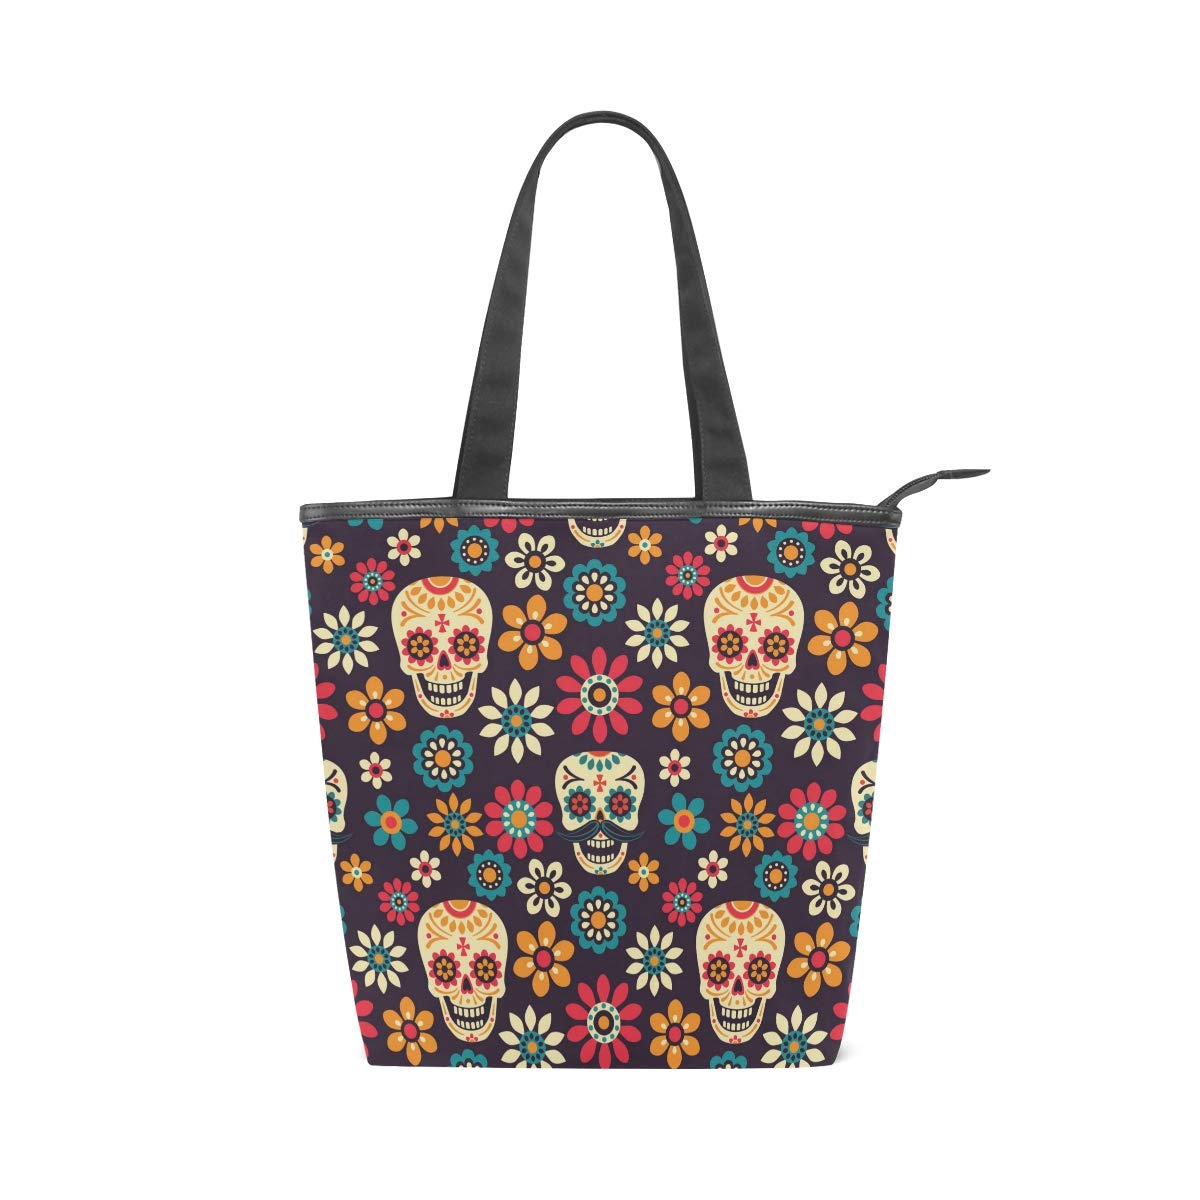 SHANGLONG DIY Womens Canvas Tote Bag Skull for College School Laptop Books Daily Use